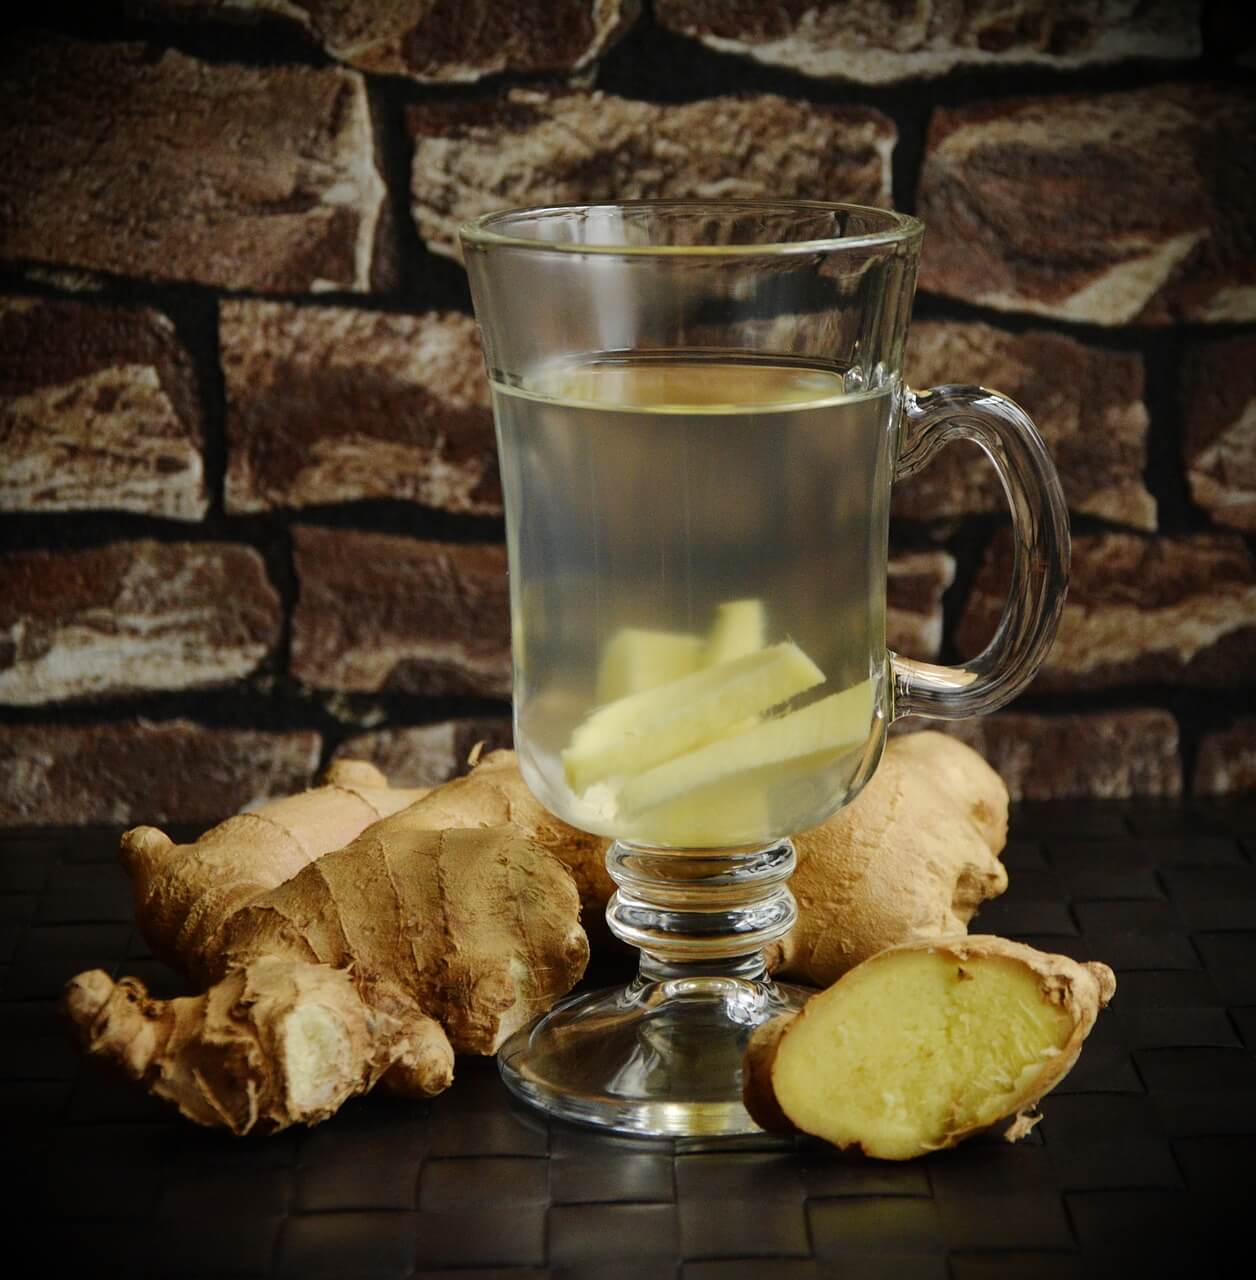 How to make ginger tea